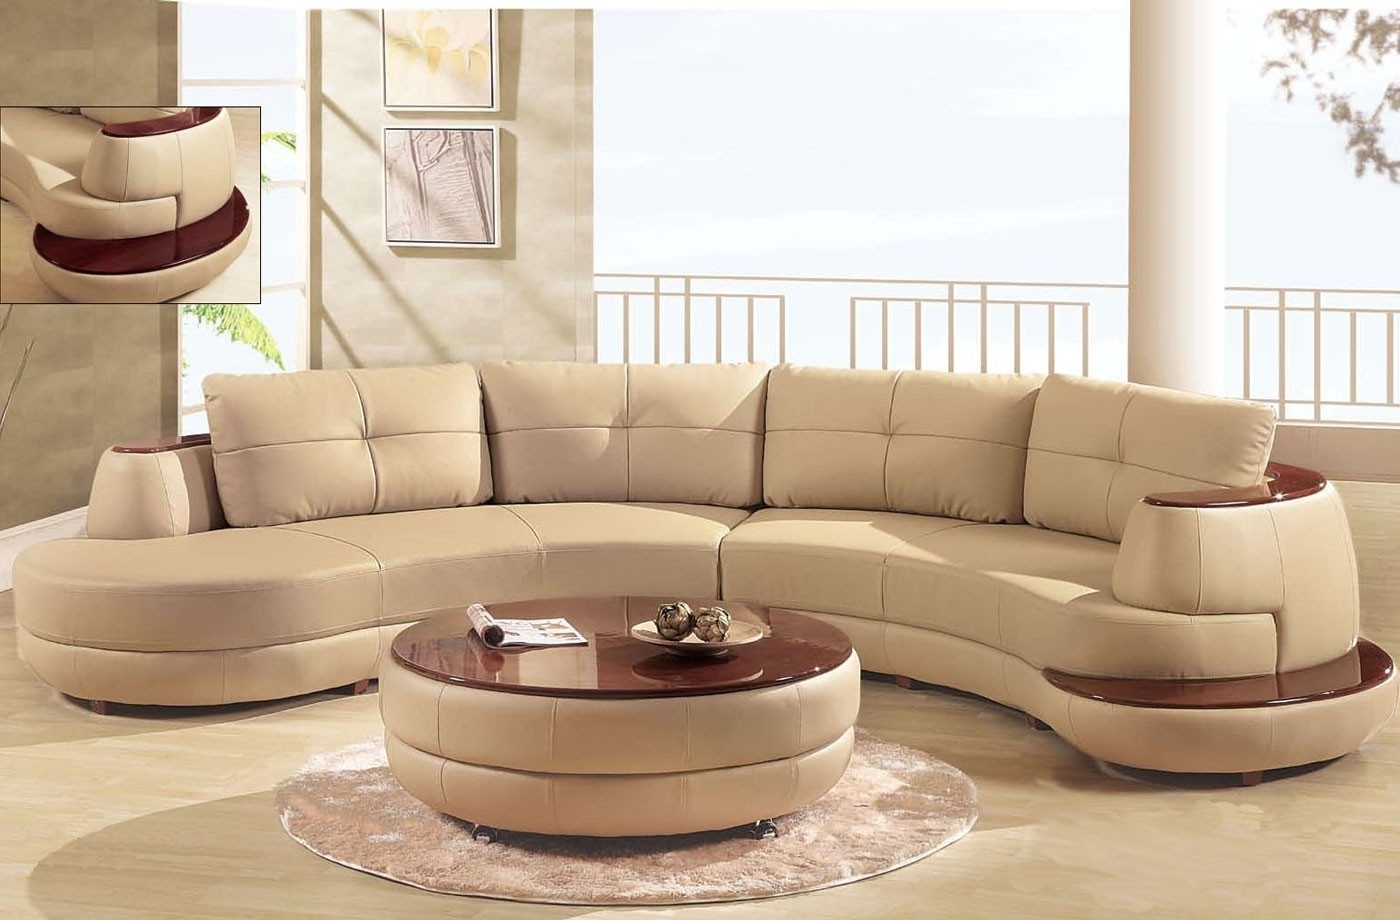 Trendy Homemakers Sectional Sofas With Regard To Charming Two Tones Modern Sectional Sofa Design In Brown And White (View 19 of 20)